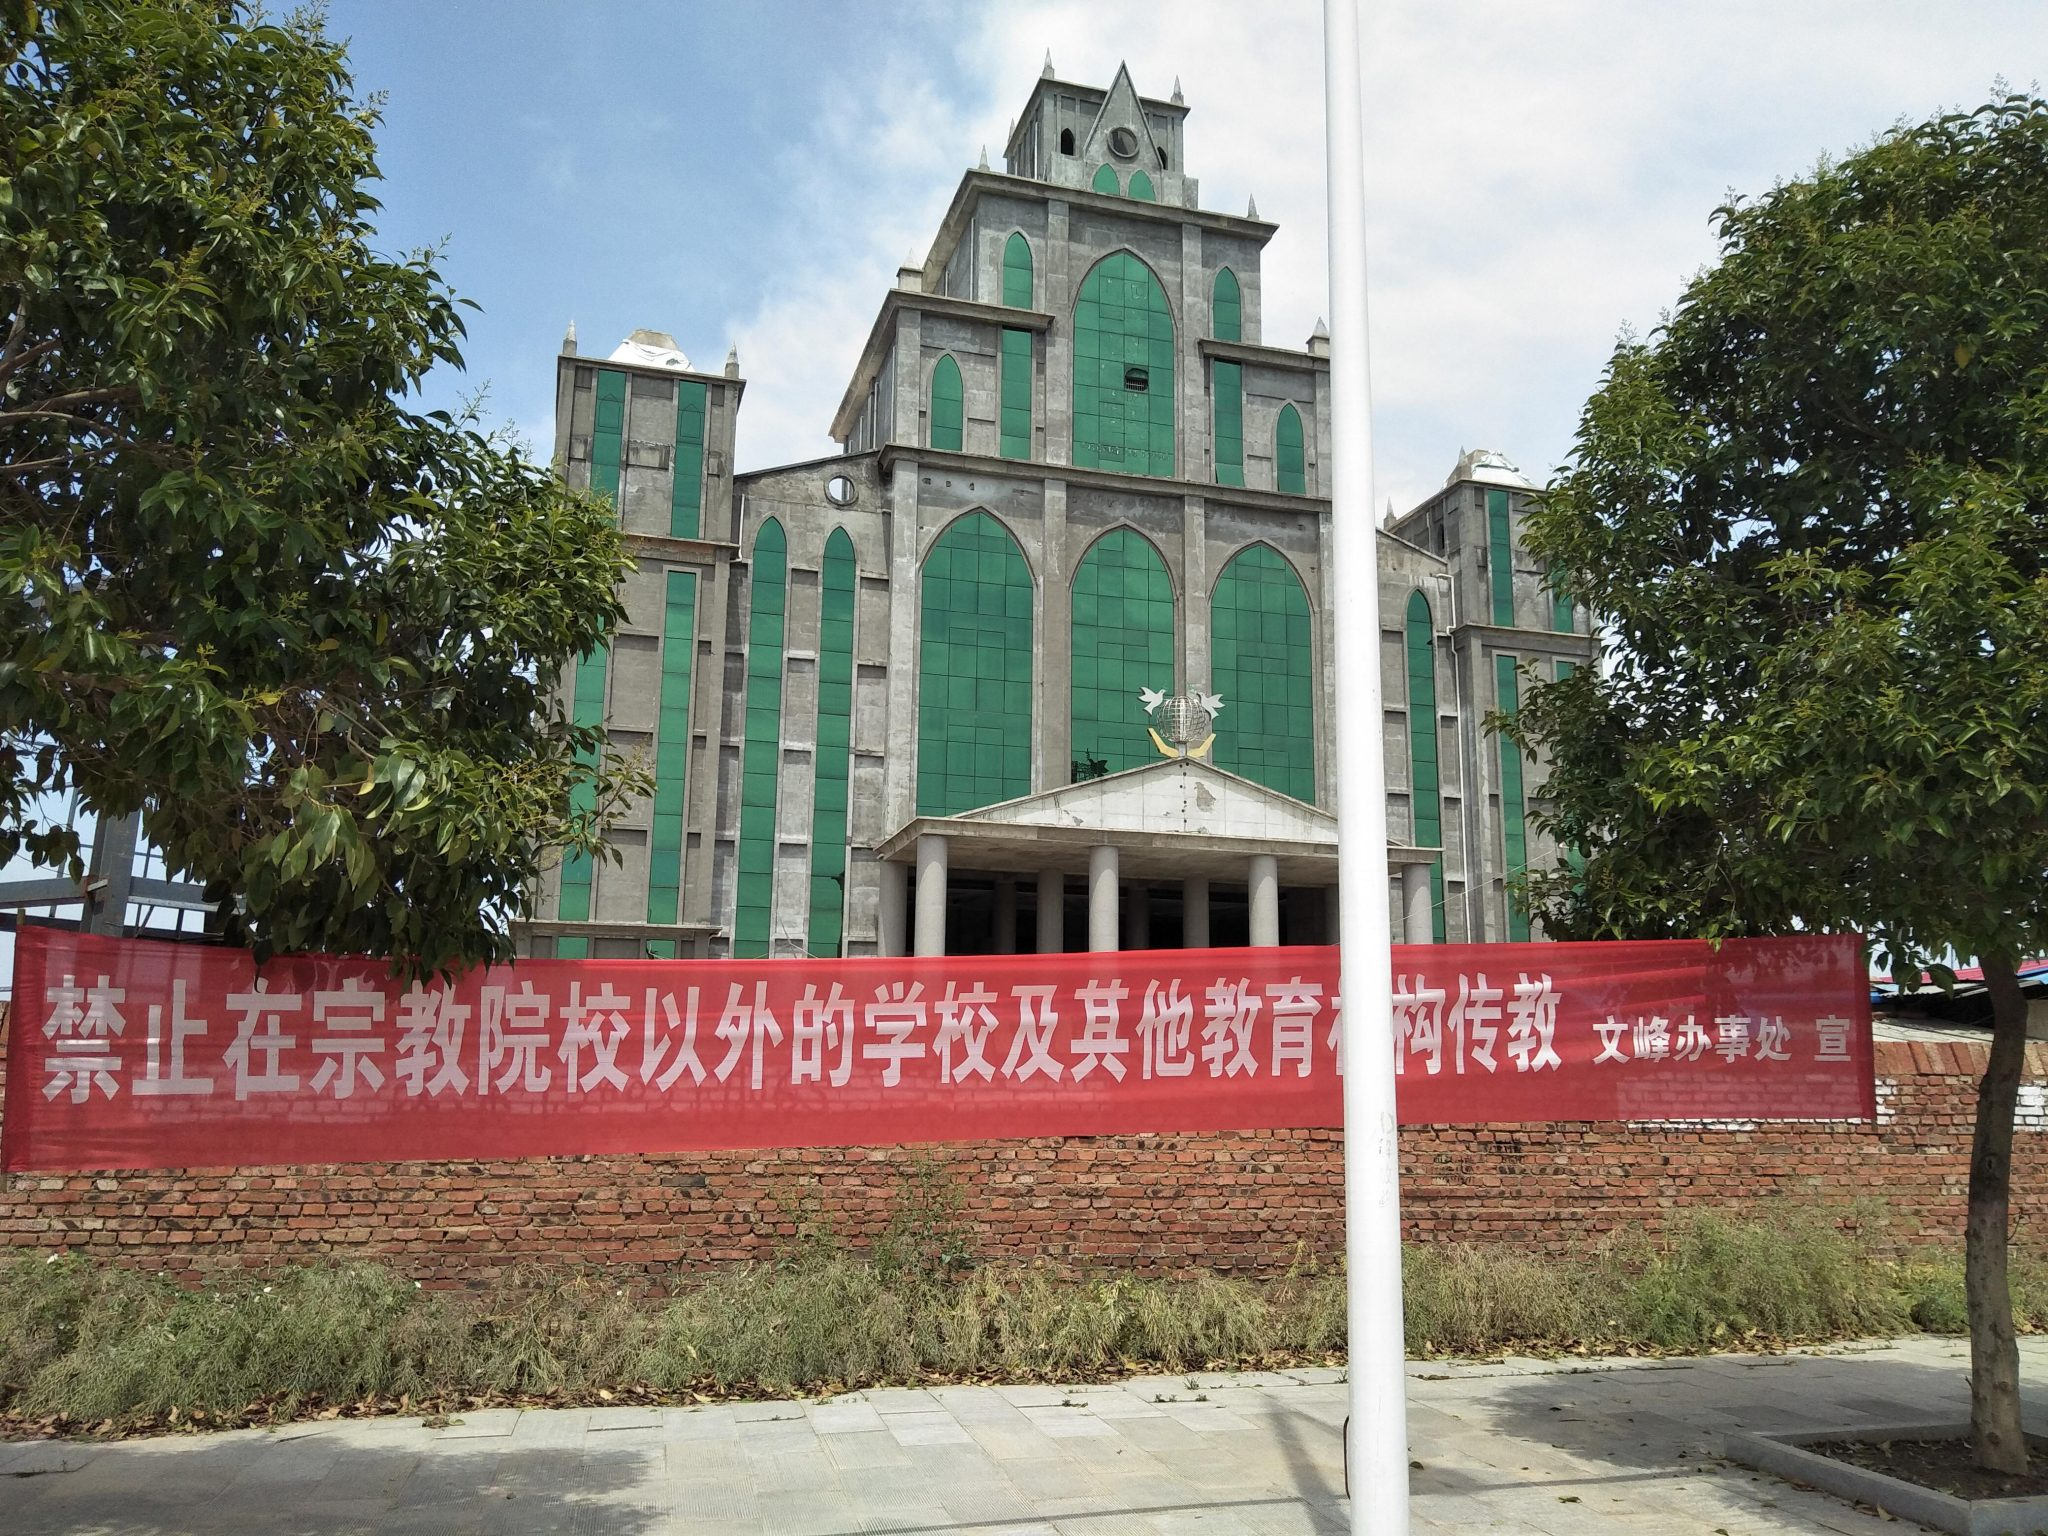 a banner outside the Holy Grace Church in Tanghe County